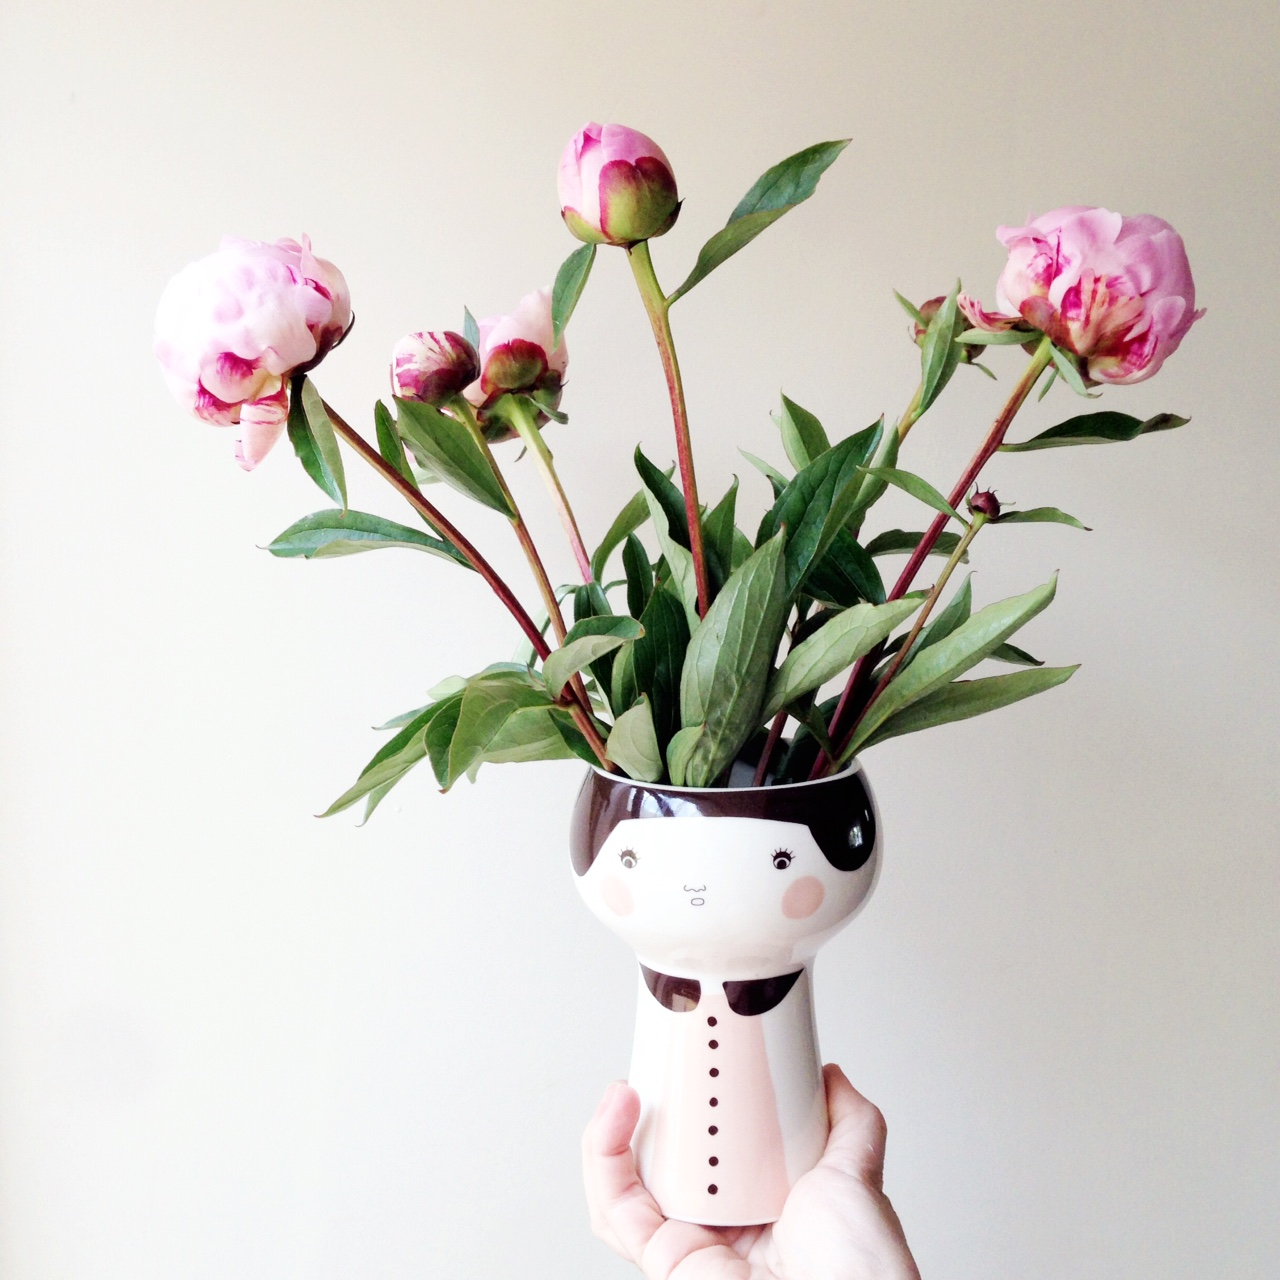 Single stems or bountiful blooms, peonies are always a good idea, no?